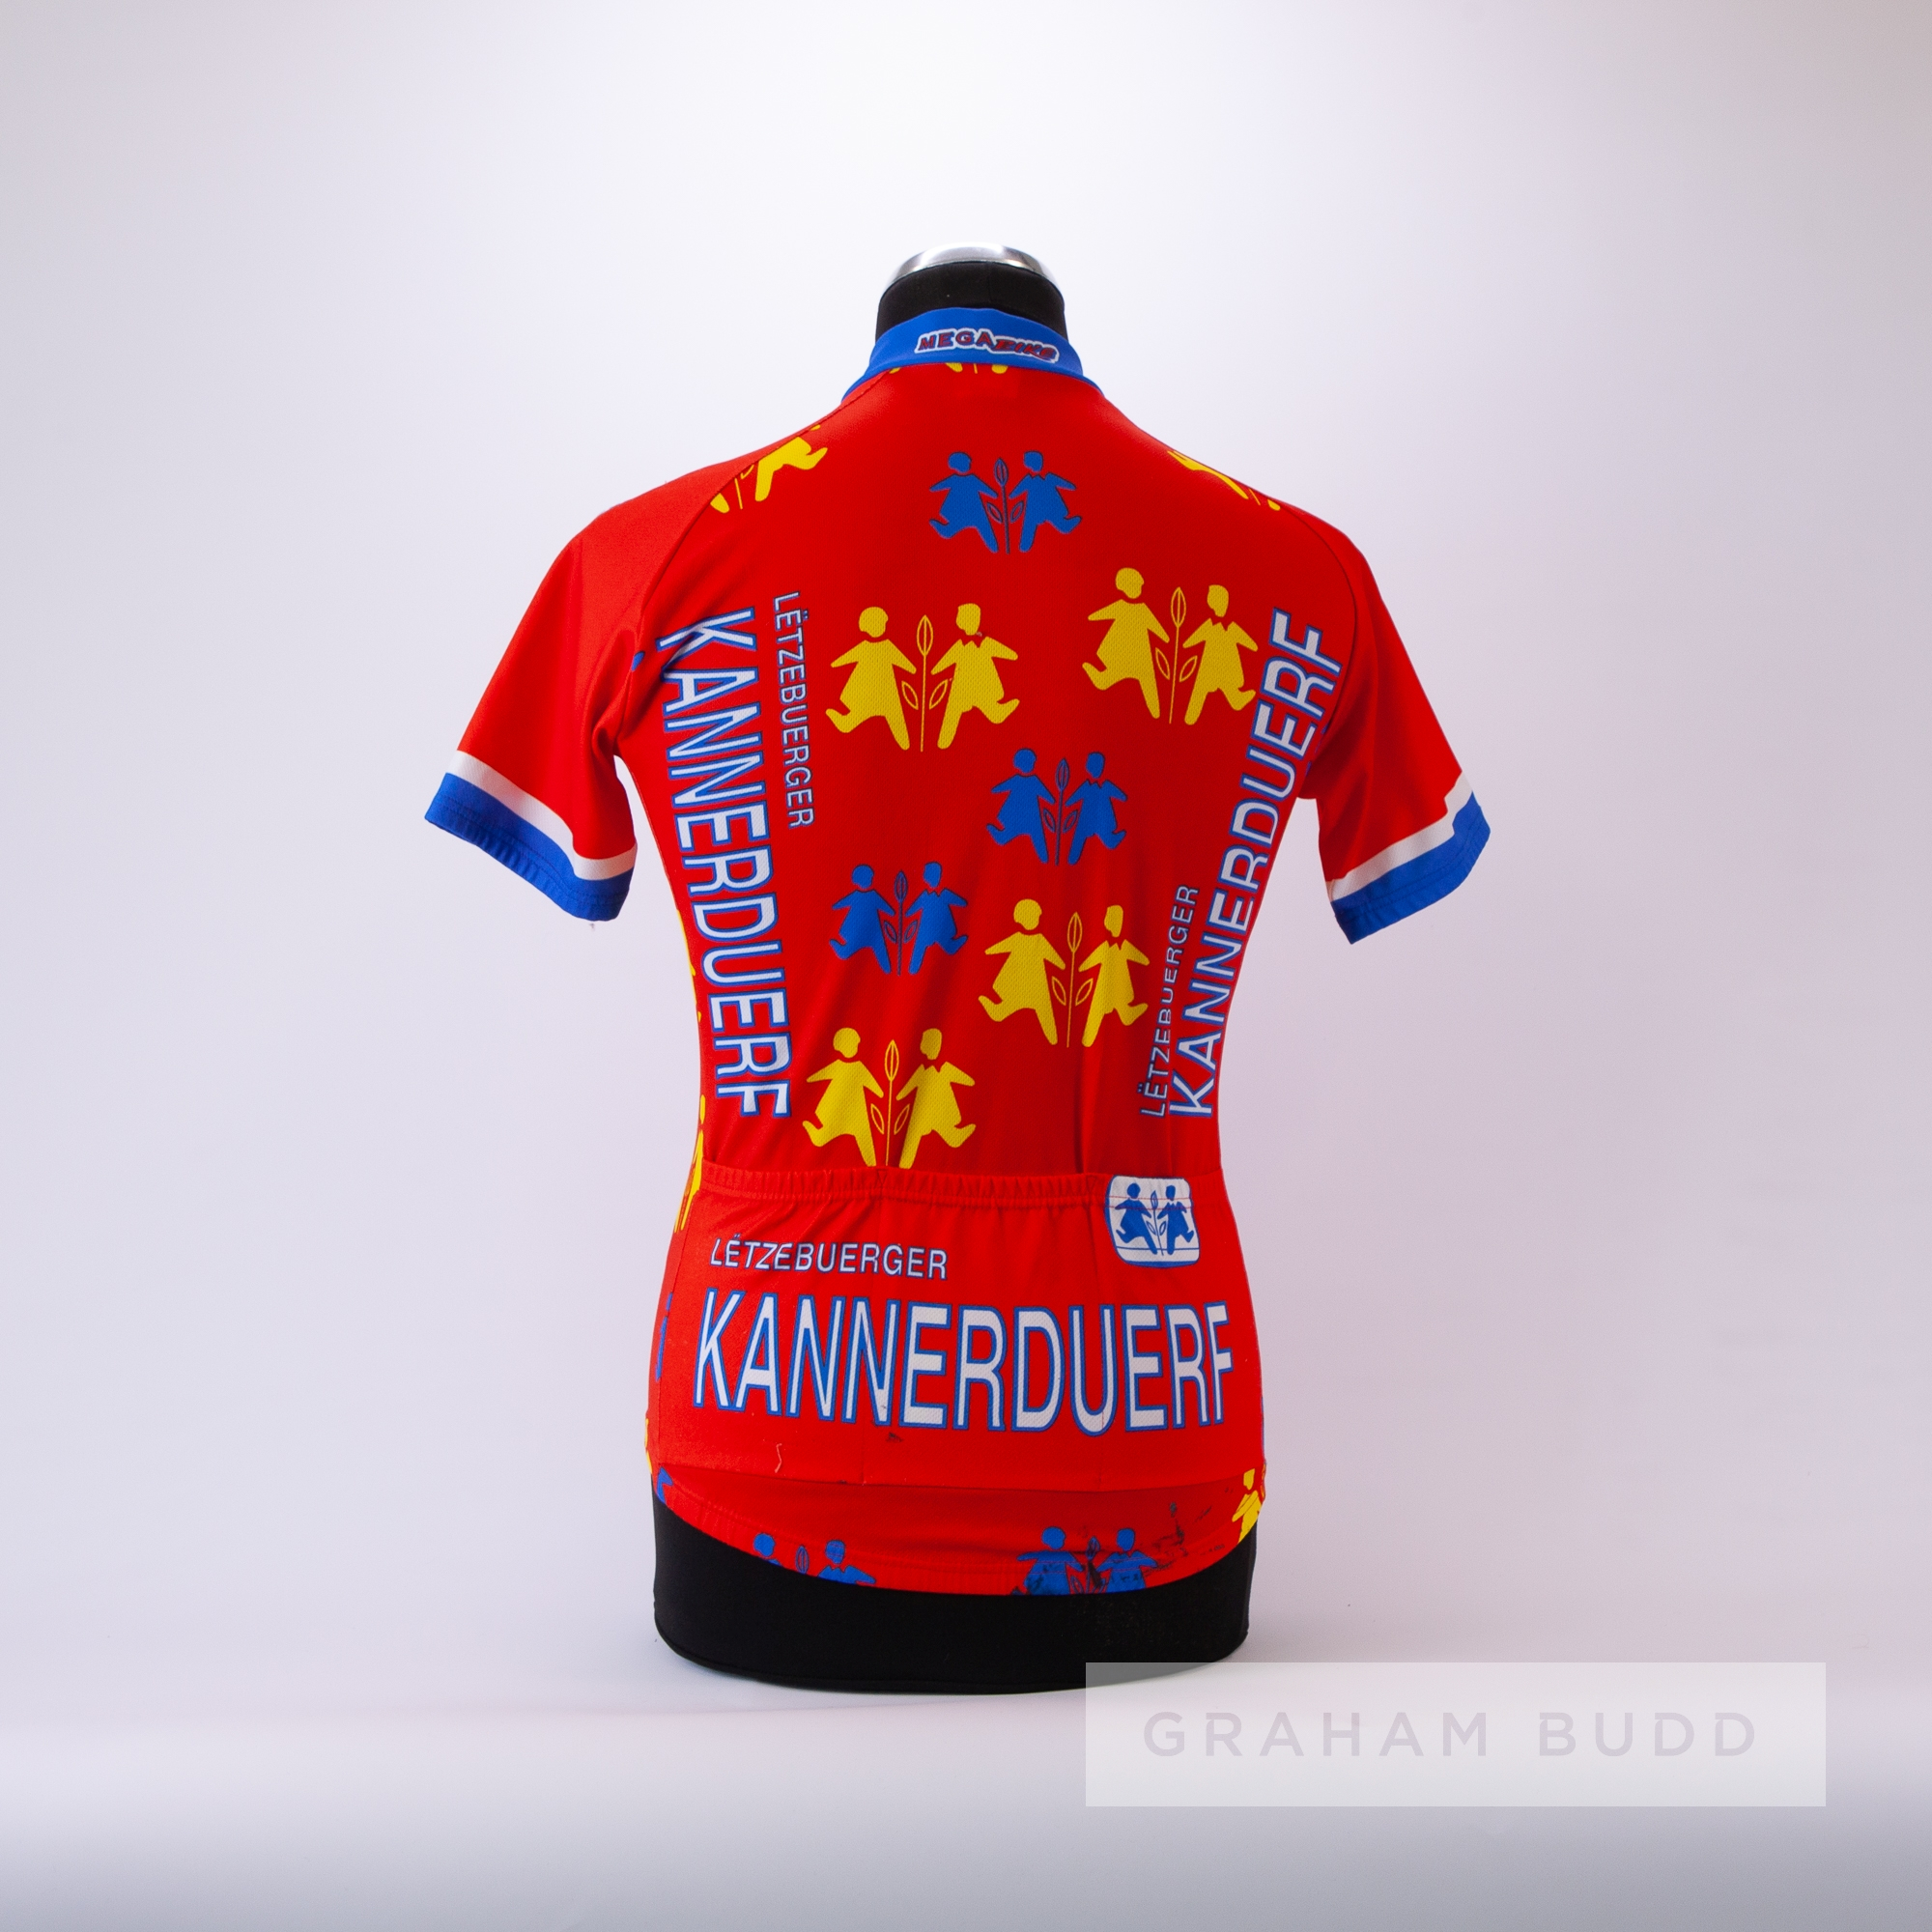 1985 orange, white, red and yellow Gigi Cycling team race jersey, scarce, polyester short-sleeved - Image 4 of 4